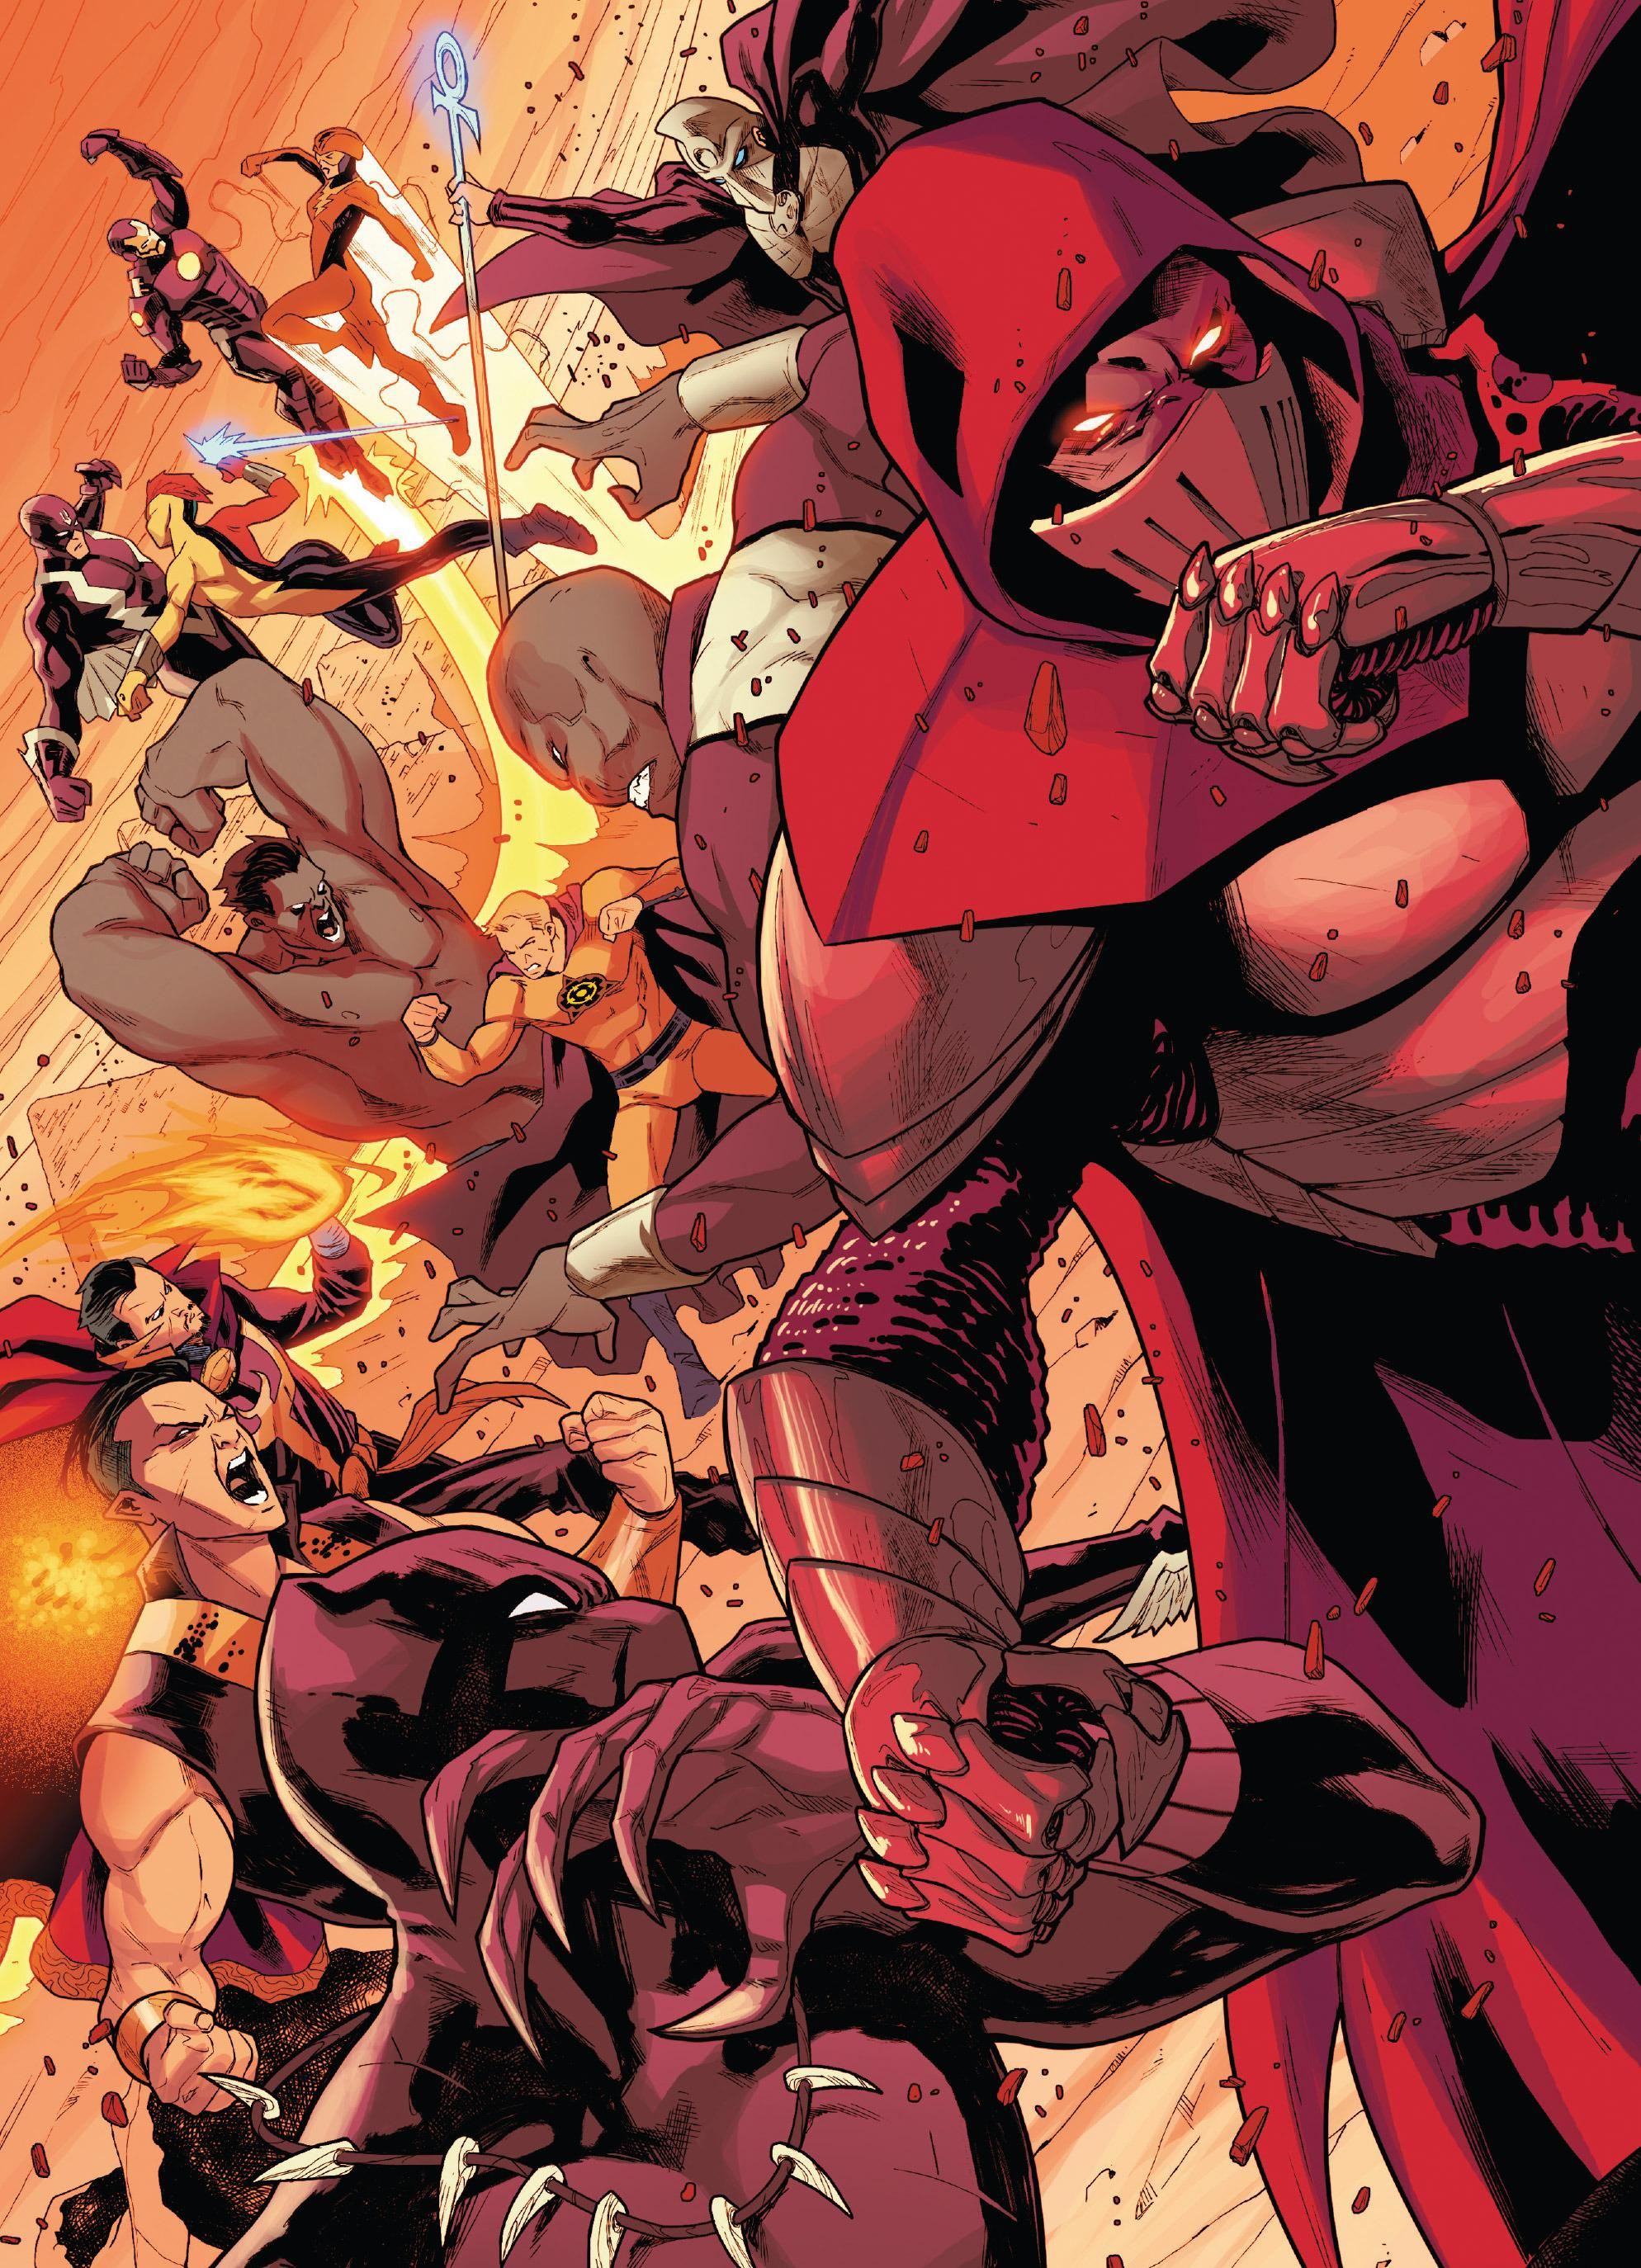 http://img2.wikia.nocookie.net/__cb20140611212906/marveldatabase/images/d/d2/New_Avengers_Vol_3_19_page_23.jpg